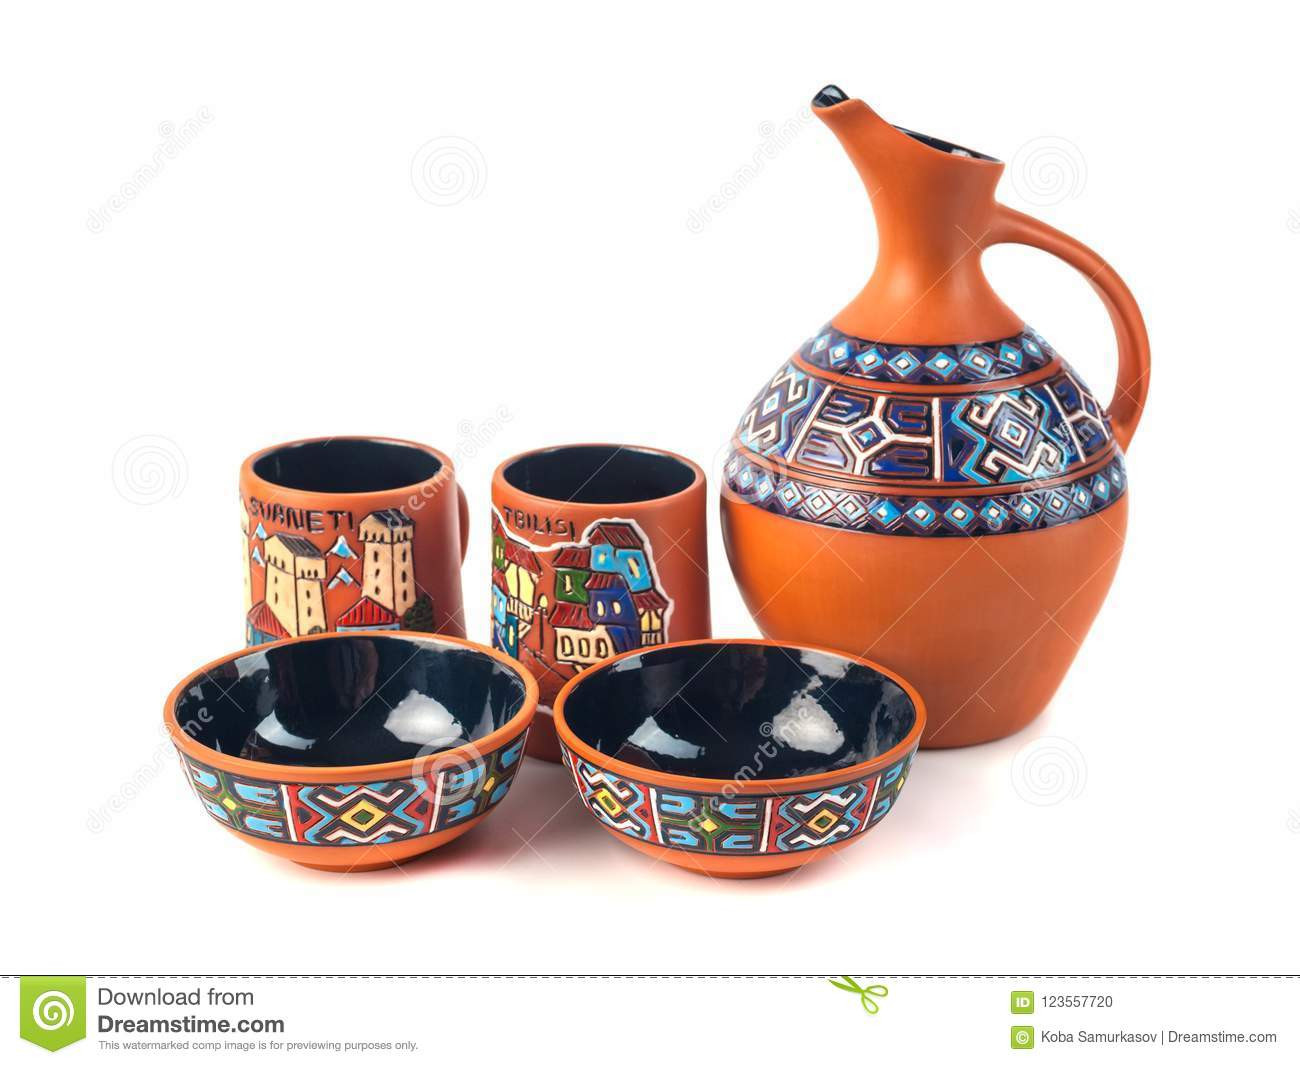 handmade ceramic vases for sale of georgian handmade ceramic clay jug with traditional ornaments stock in georgian handmade ceramic clay jug with traditional ornaments